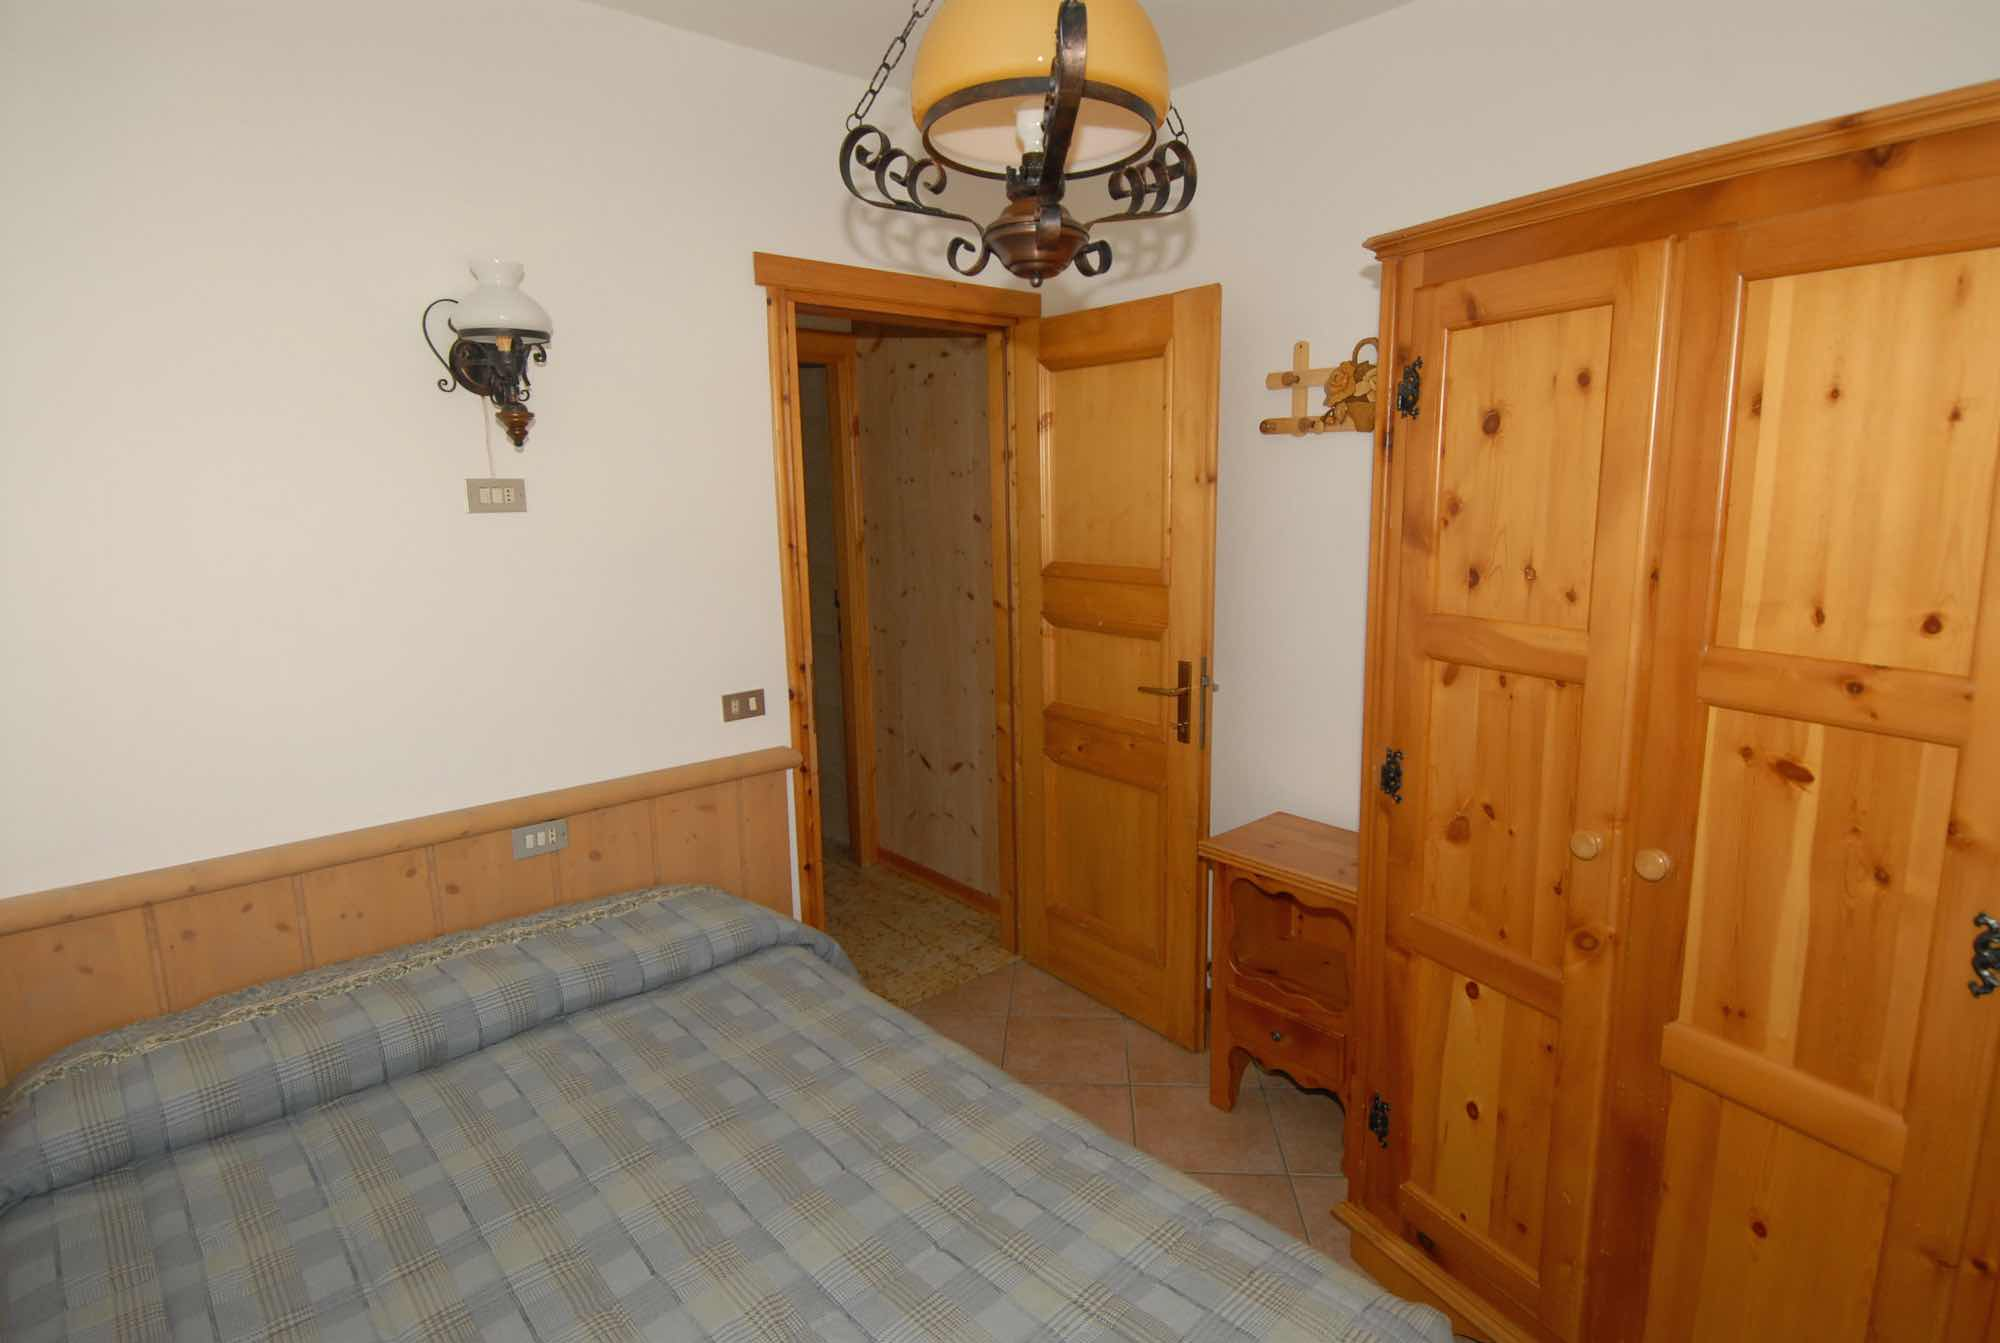 Baita Guana - Via Borch N.800, Livigno 23041 - Apartment - Piano Terra X6 5